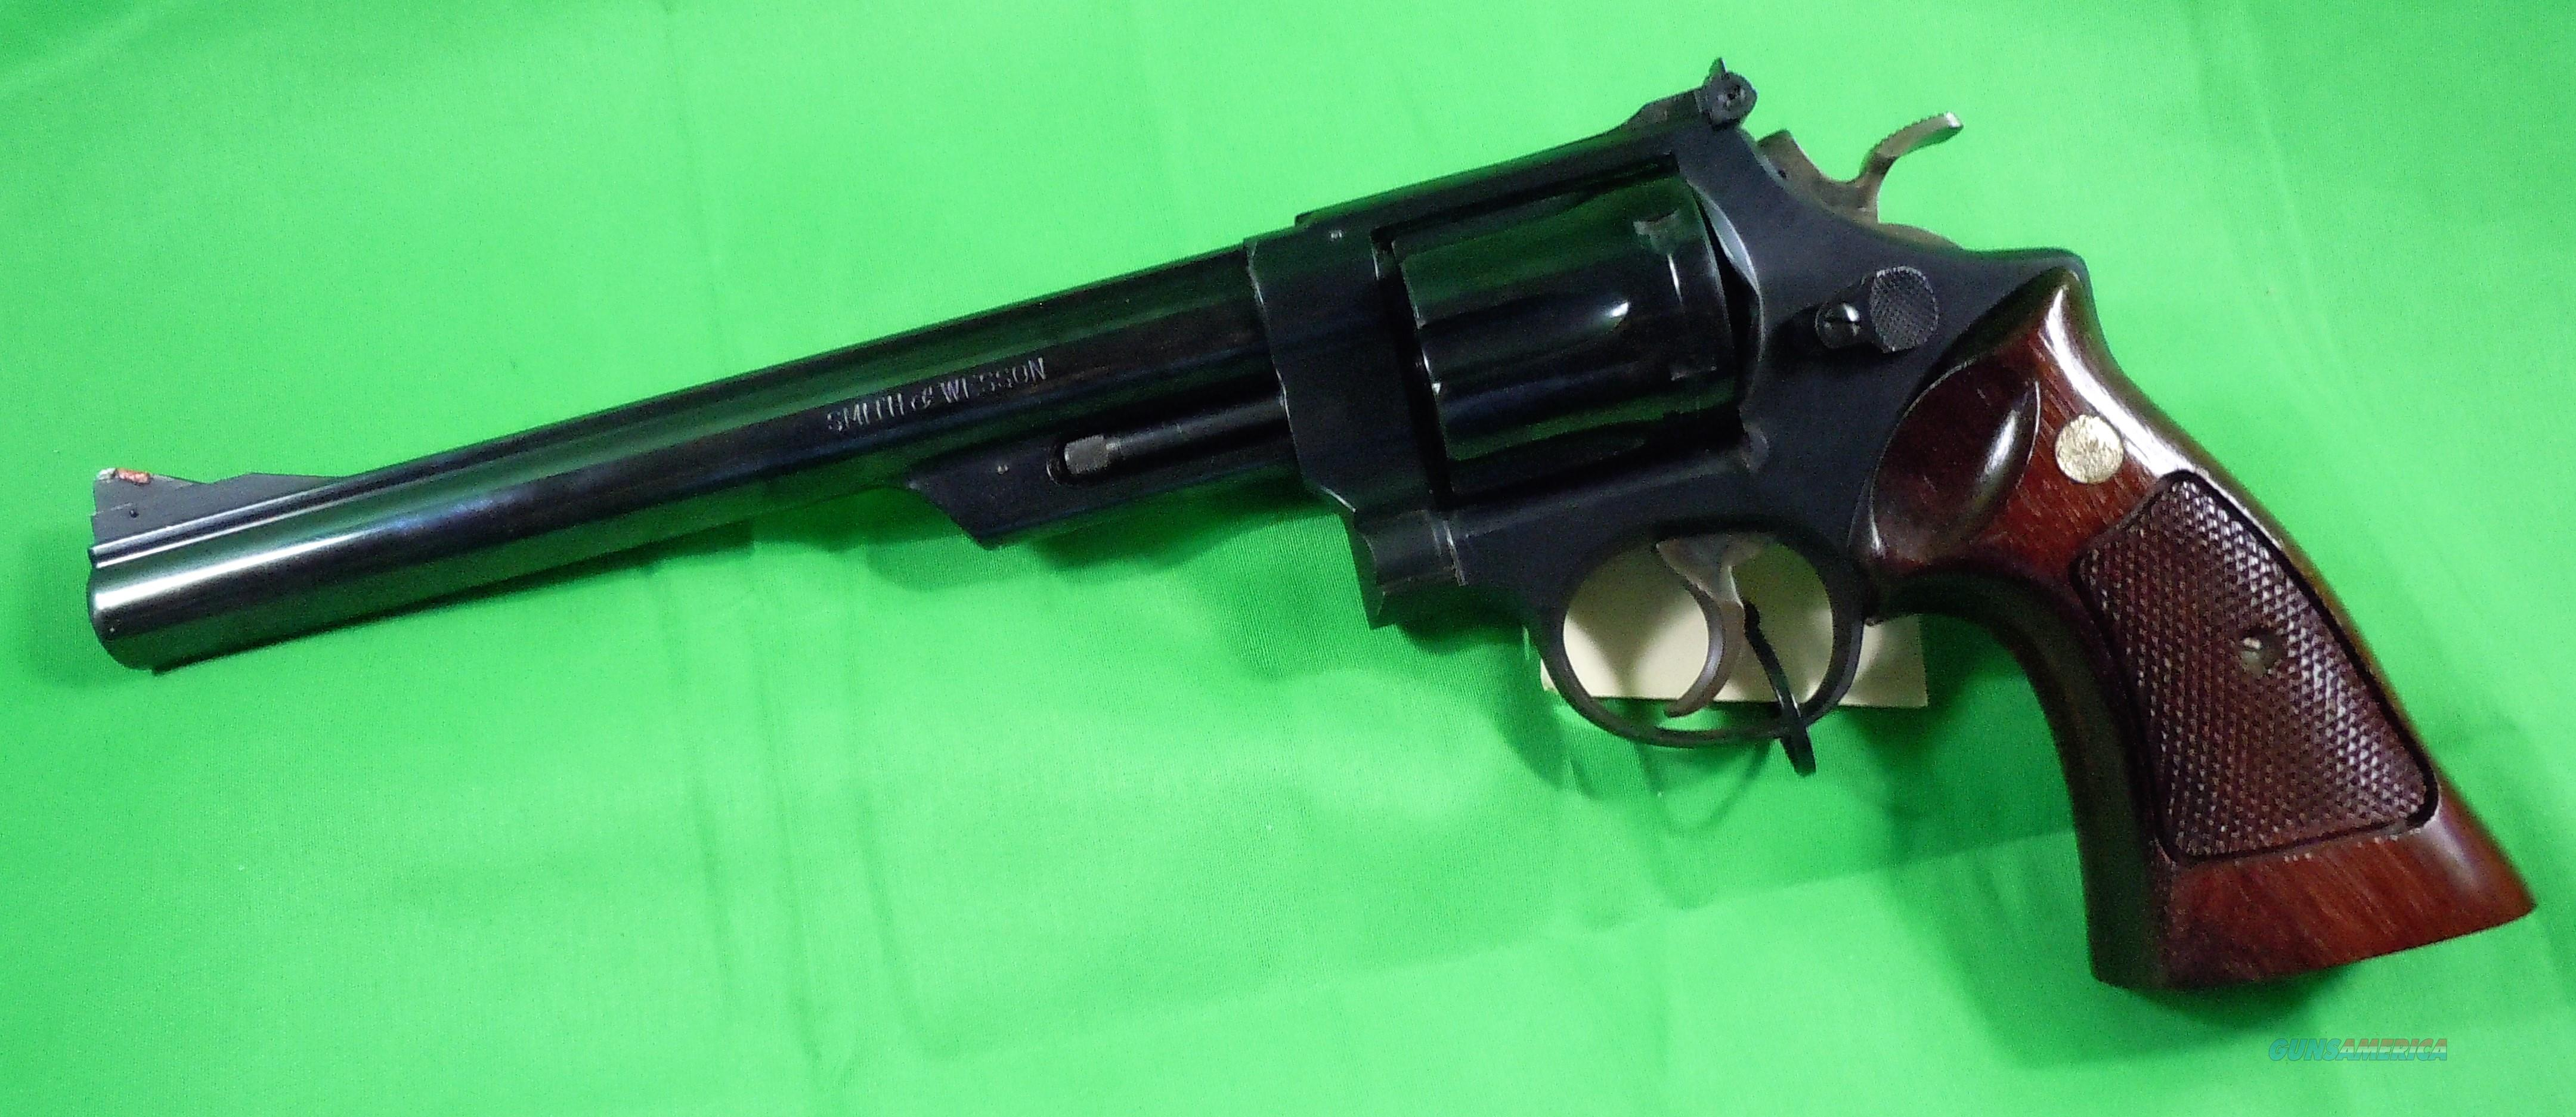 Smith & Wesson Model 28-2 - 44 Magnum Revolver  Guns > Pistols > Smith & Wesson Revolvers > Full Frame Revolver